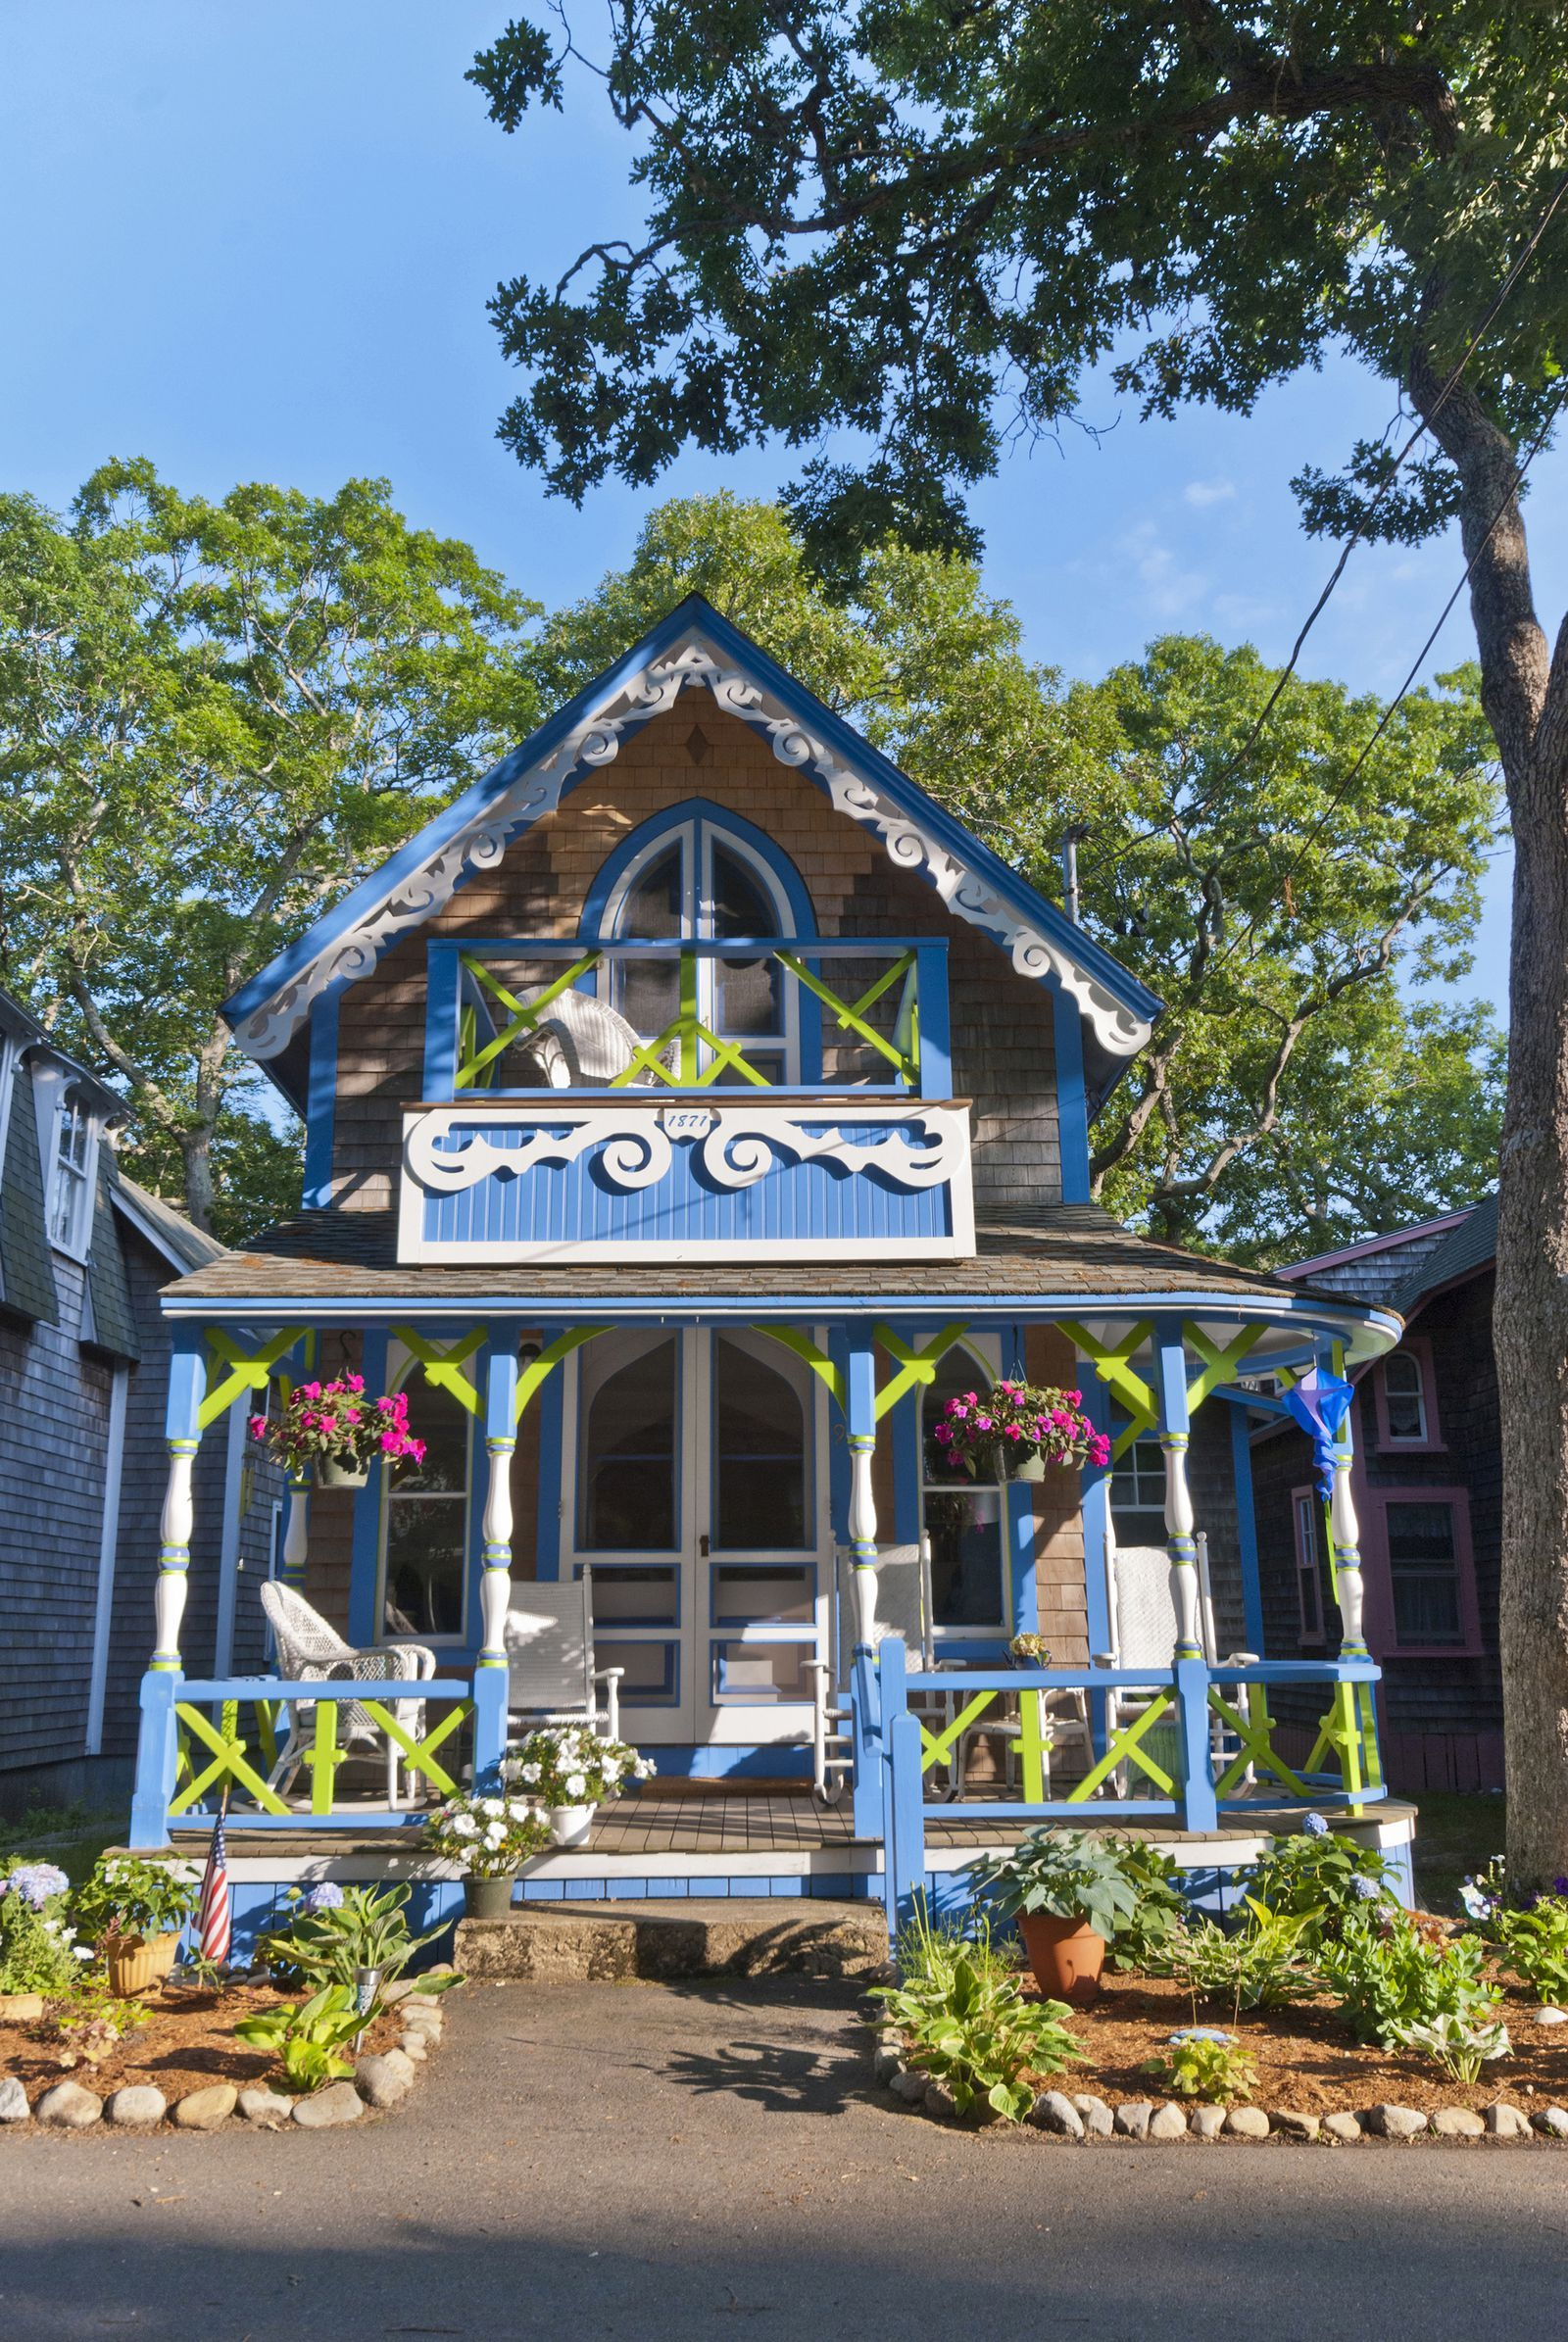 how to get to martha's vineyard from long island